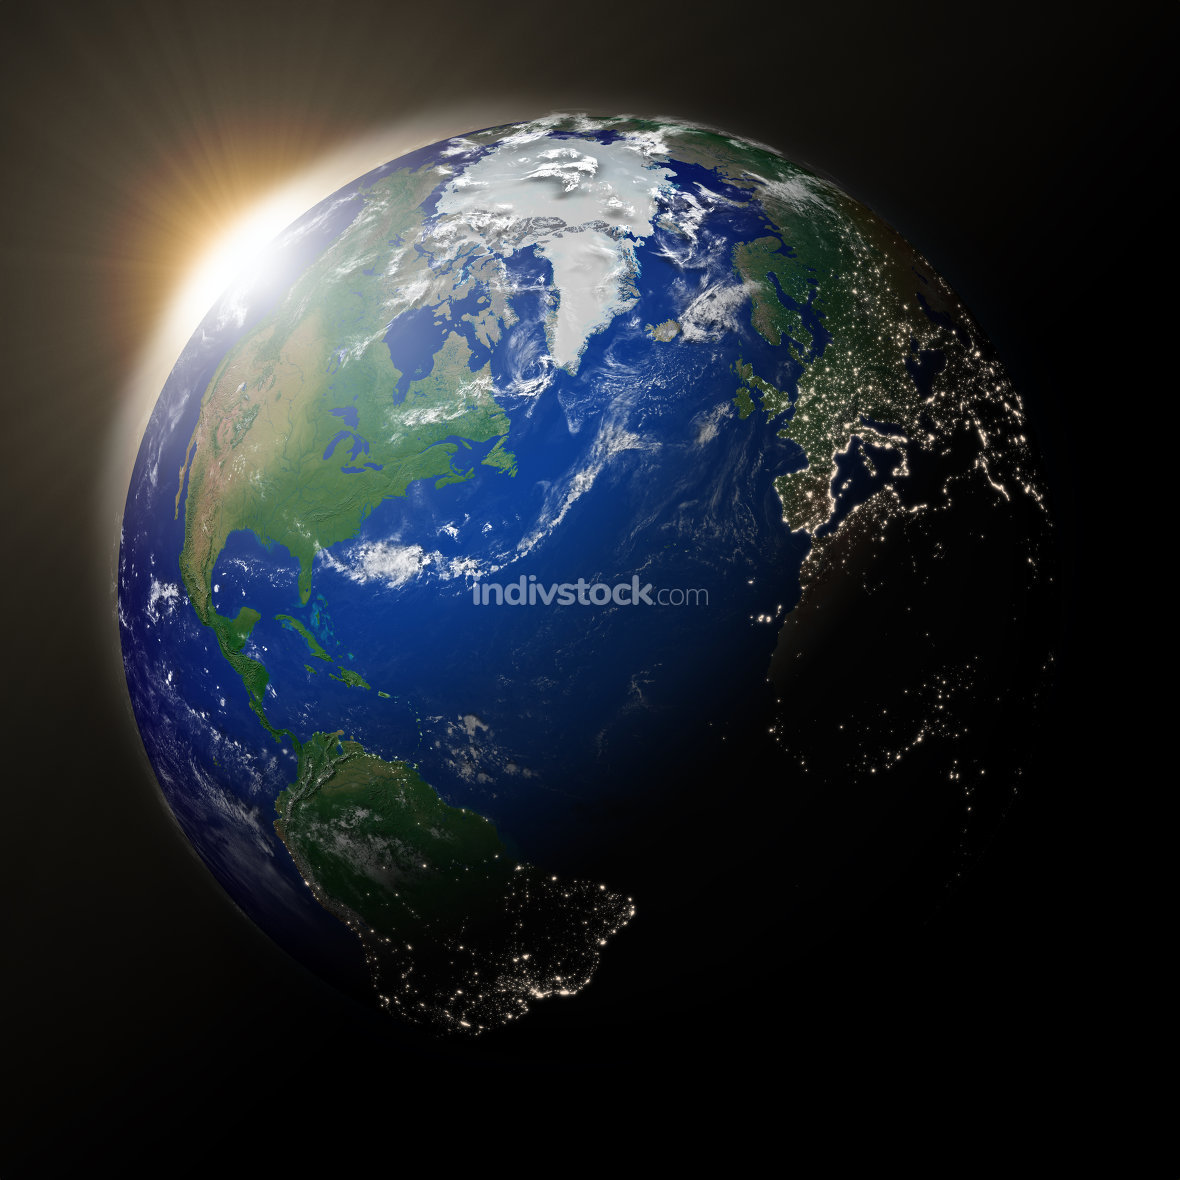 Sun over North America on planet Earth. Elements of this image furnished by NASA.